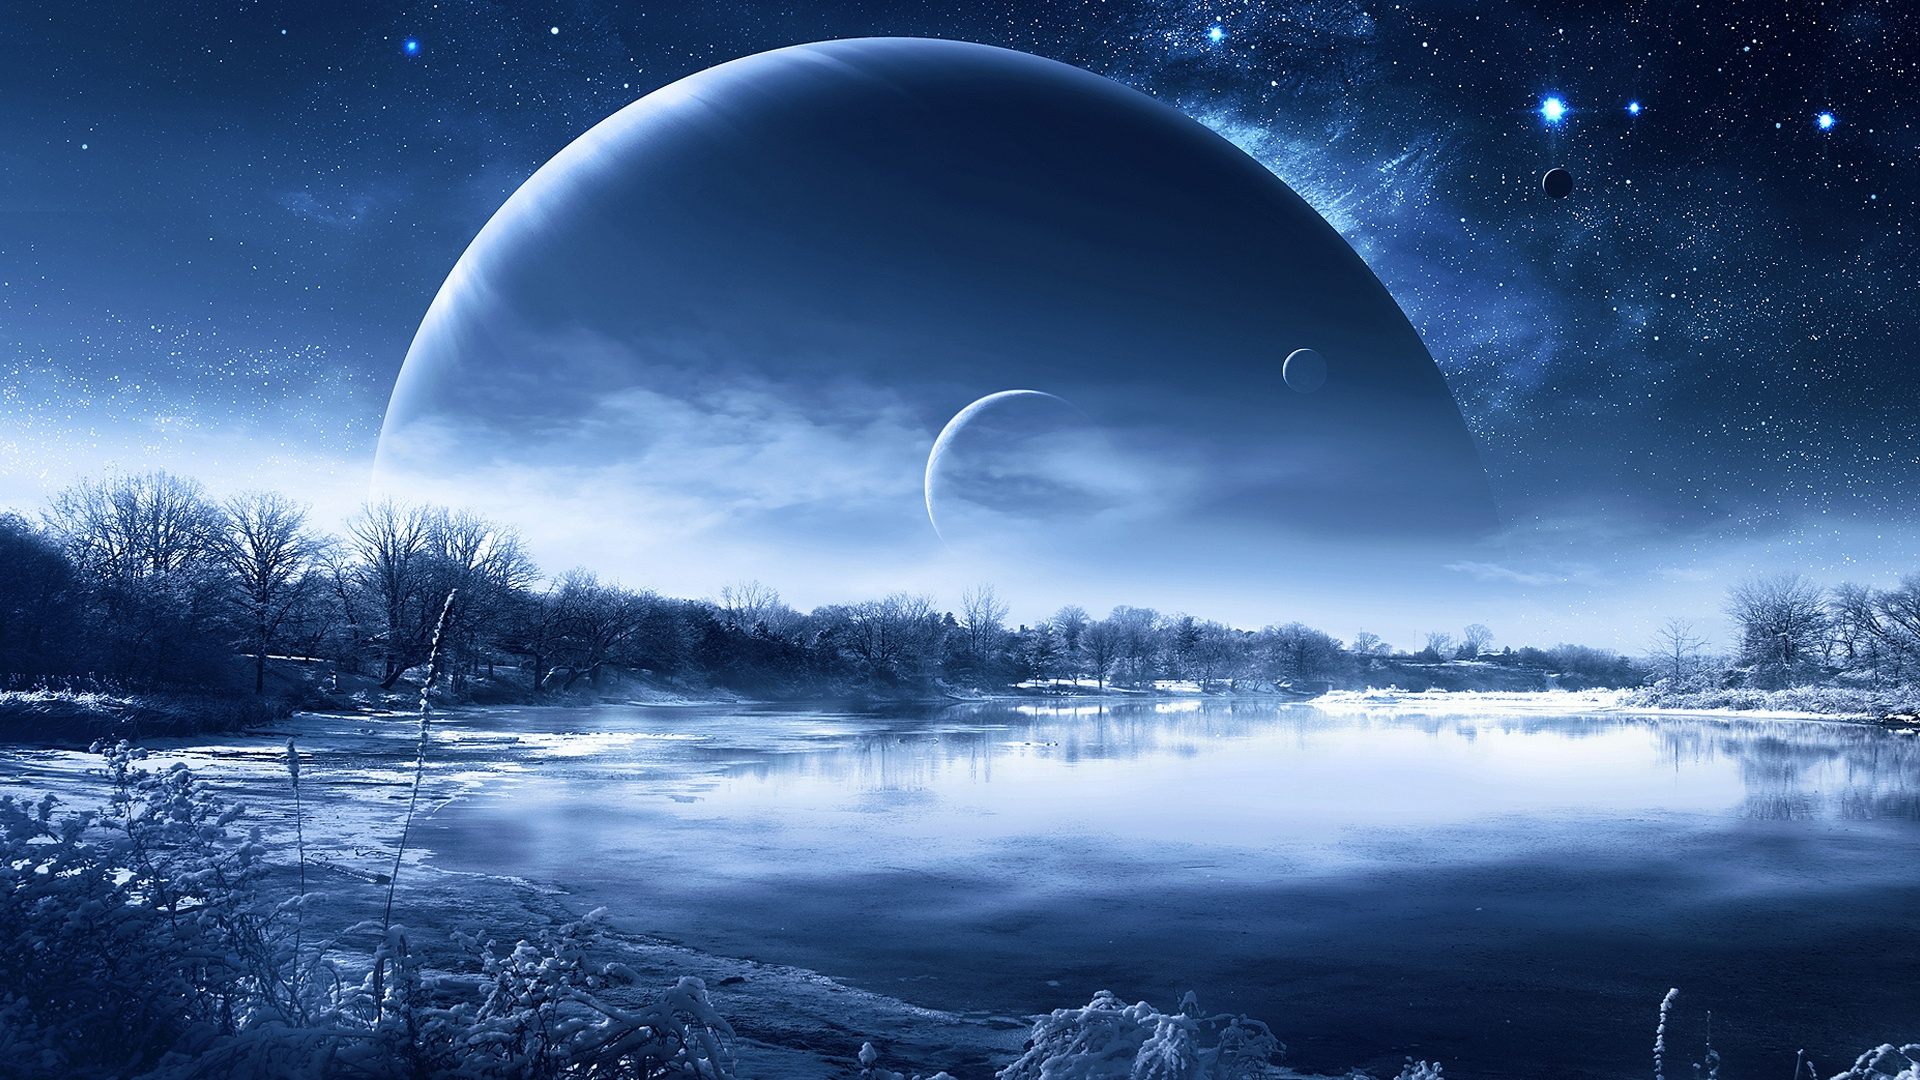 Wallpaper Winter snow lake trees, planets in the sky ...